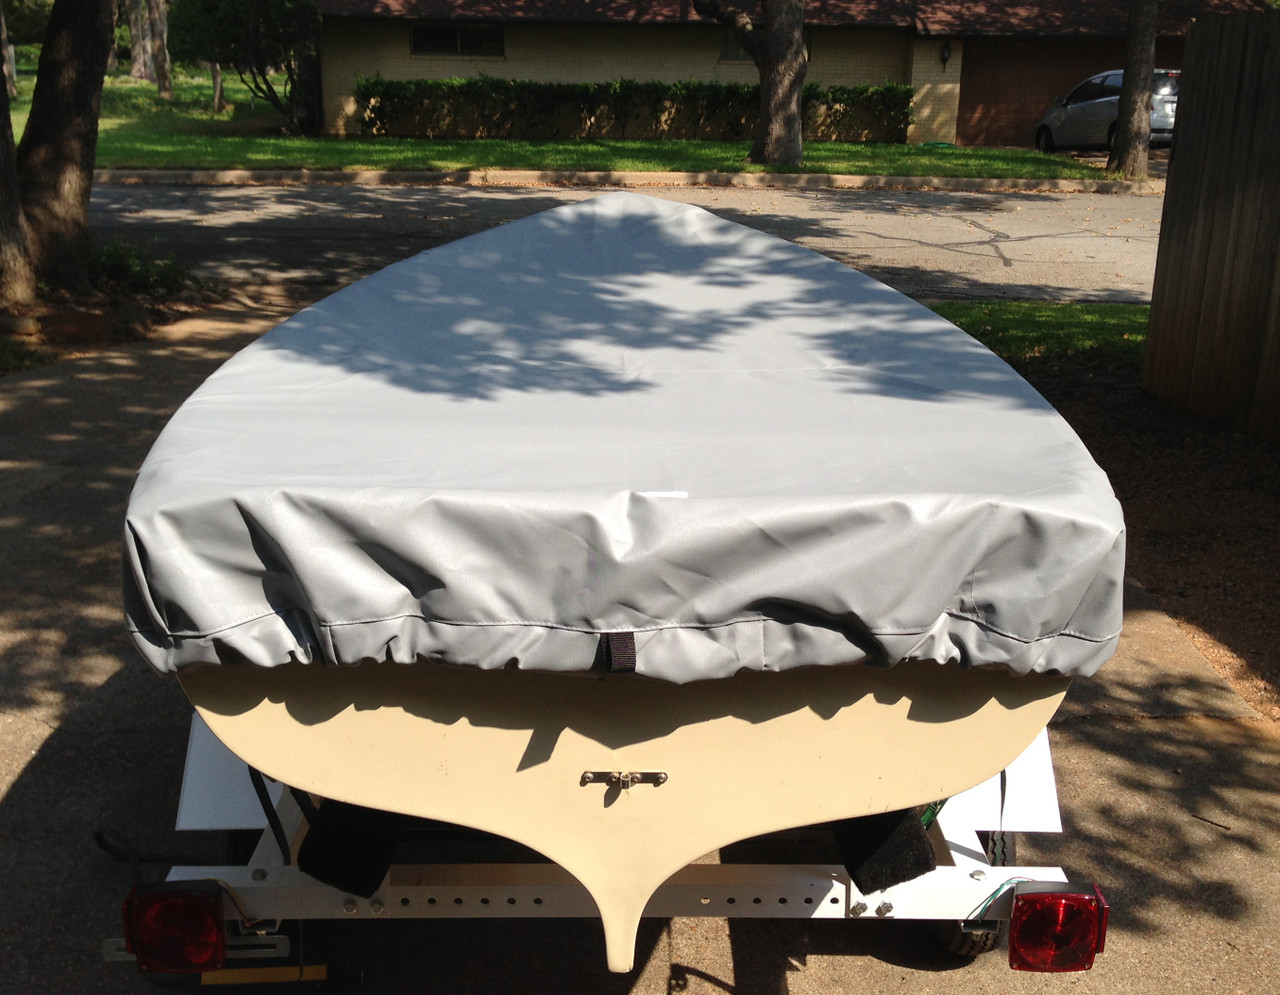 Top Cover to fit a Fatty Knees 8 sailing dinghy by SLO Sail and Canvas